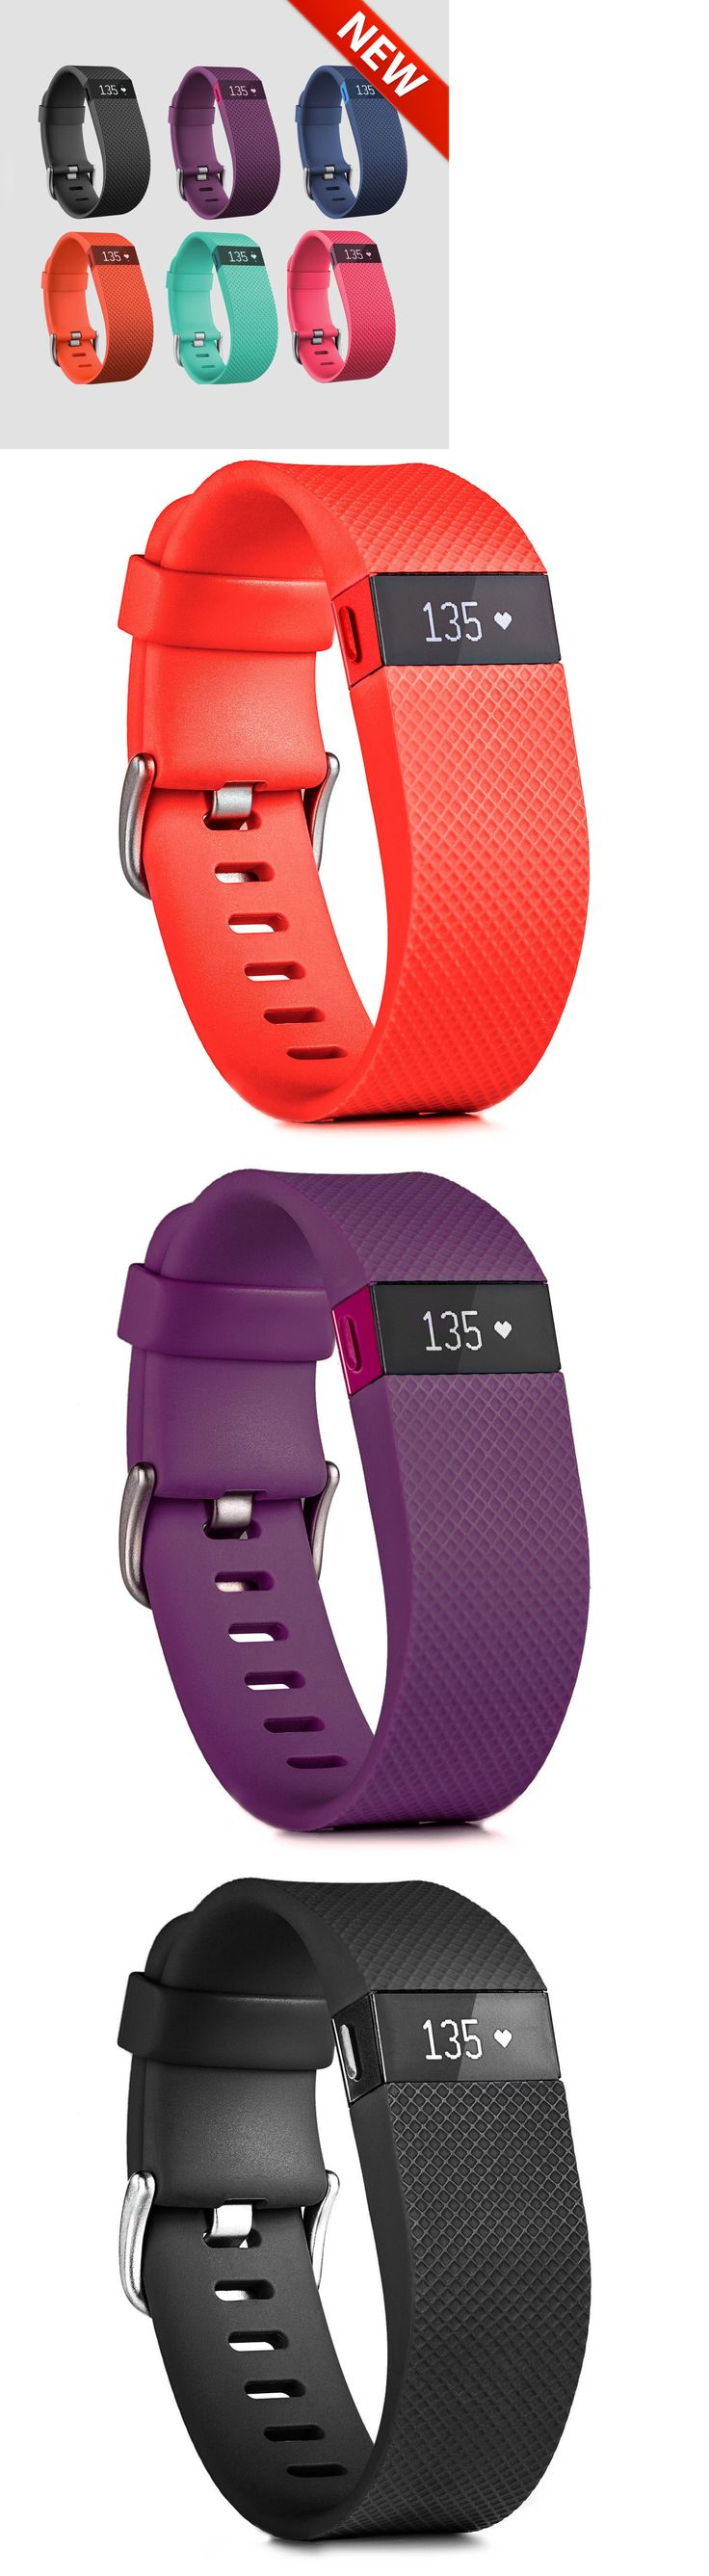 Activity Trackers 179798: Fitbit Charge Hr Activity Heart Rate + Sleep Wristband Large Small Sealed In Box -> BUY IT NOW ONLY: $59.99 on eBay!